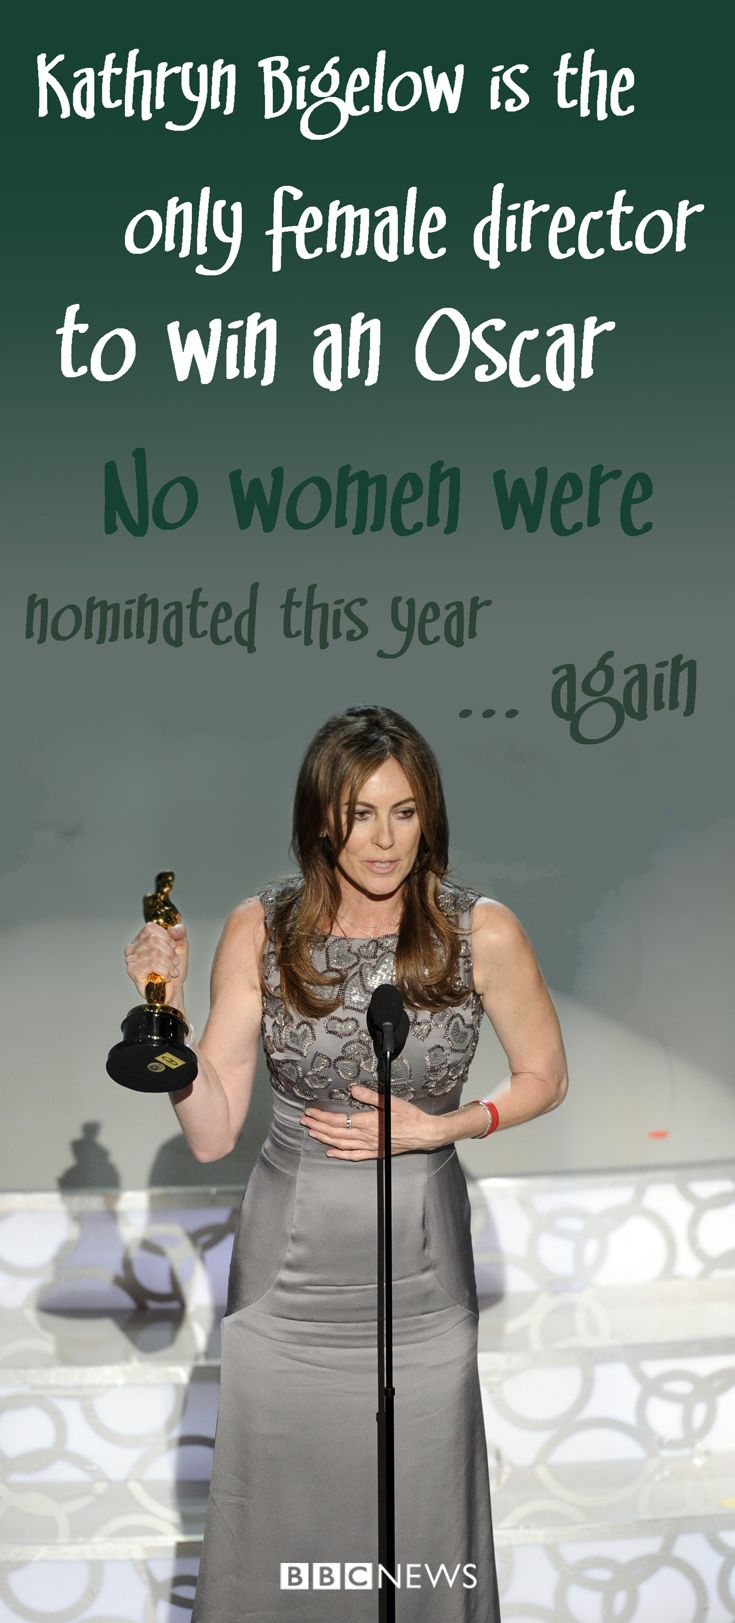 Kathryn Bigelow, the first woman to win the best director Oscar, was only the fourth female film-maker to be nominated in the category. She joined a select list featuring Sofia Coppola for Lost in Translation (2004), Jane Campion for The Piano (1994) and Italian director Lina Wertmuller for Pasaqualino Settebelleze (Seven Beauties) in 1977.